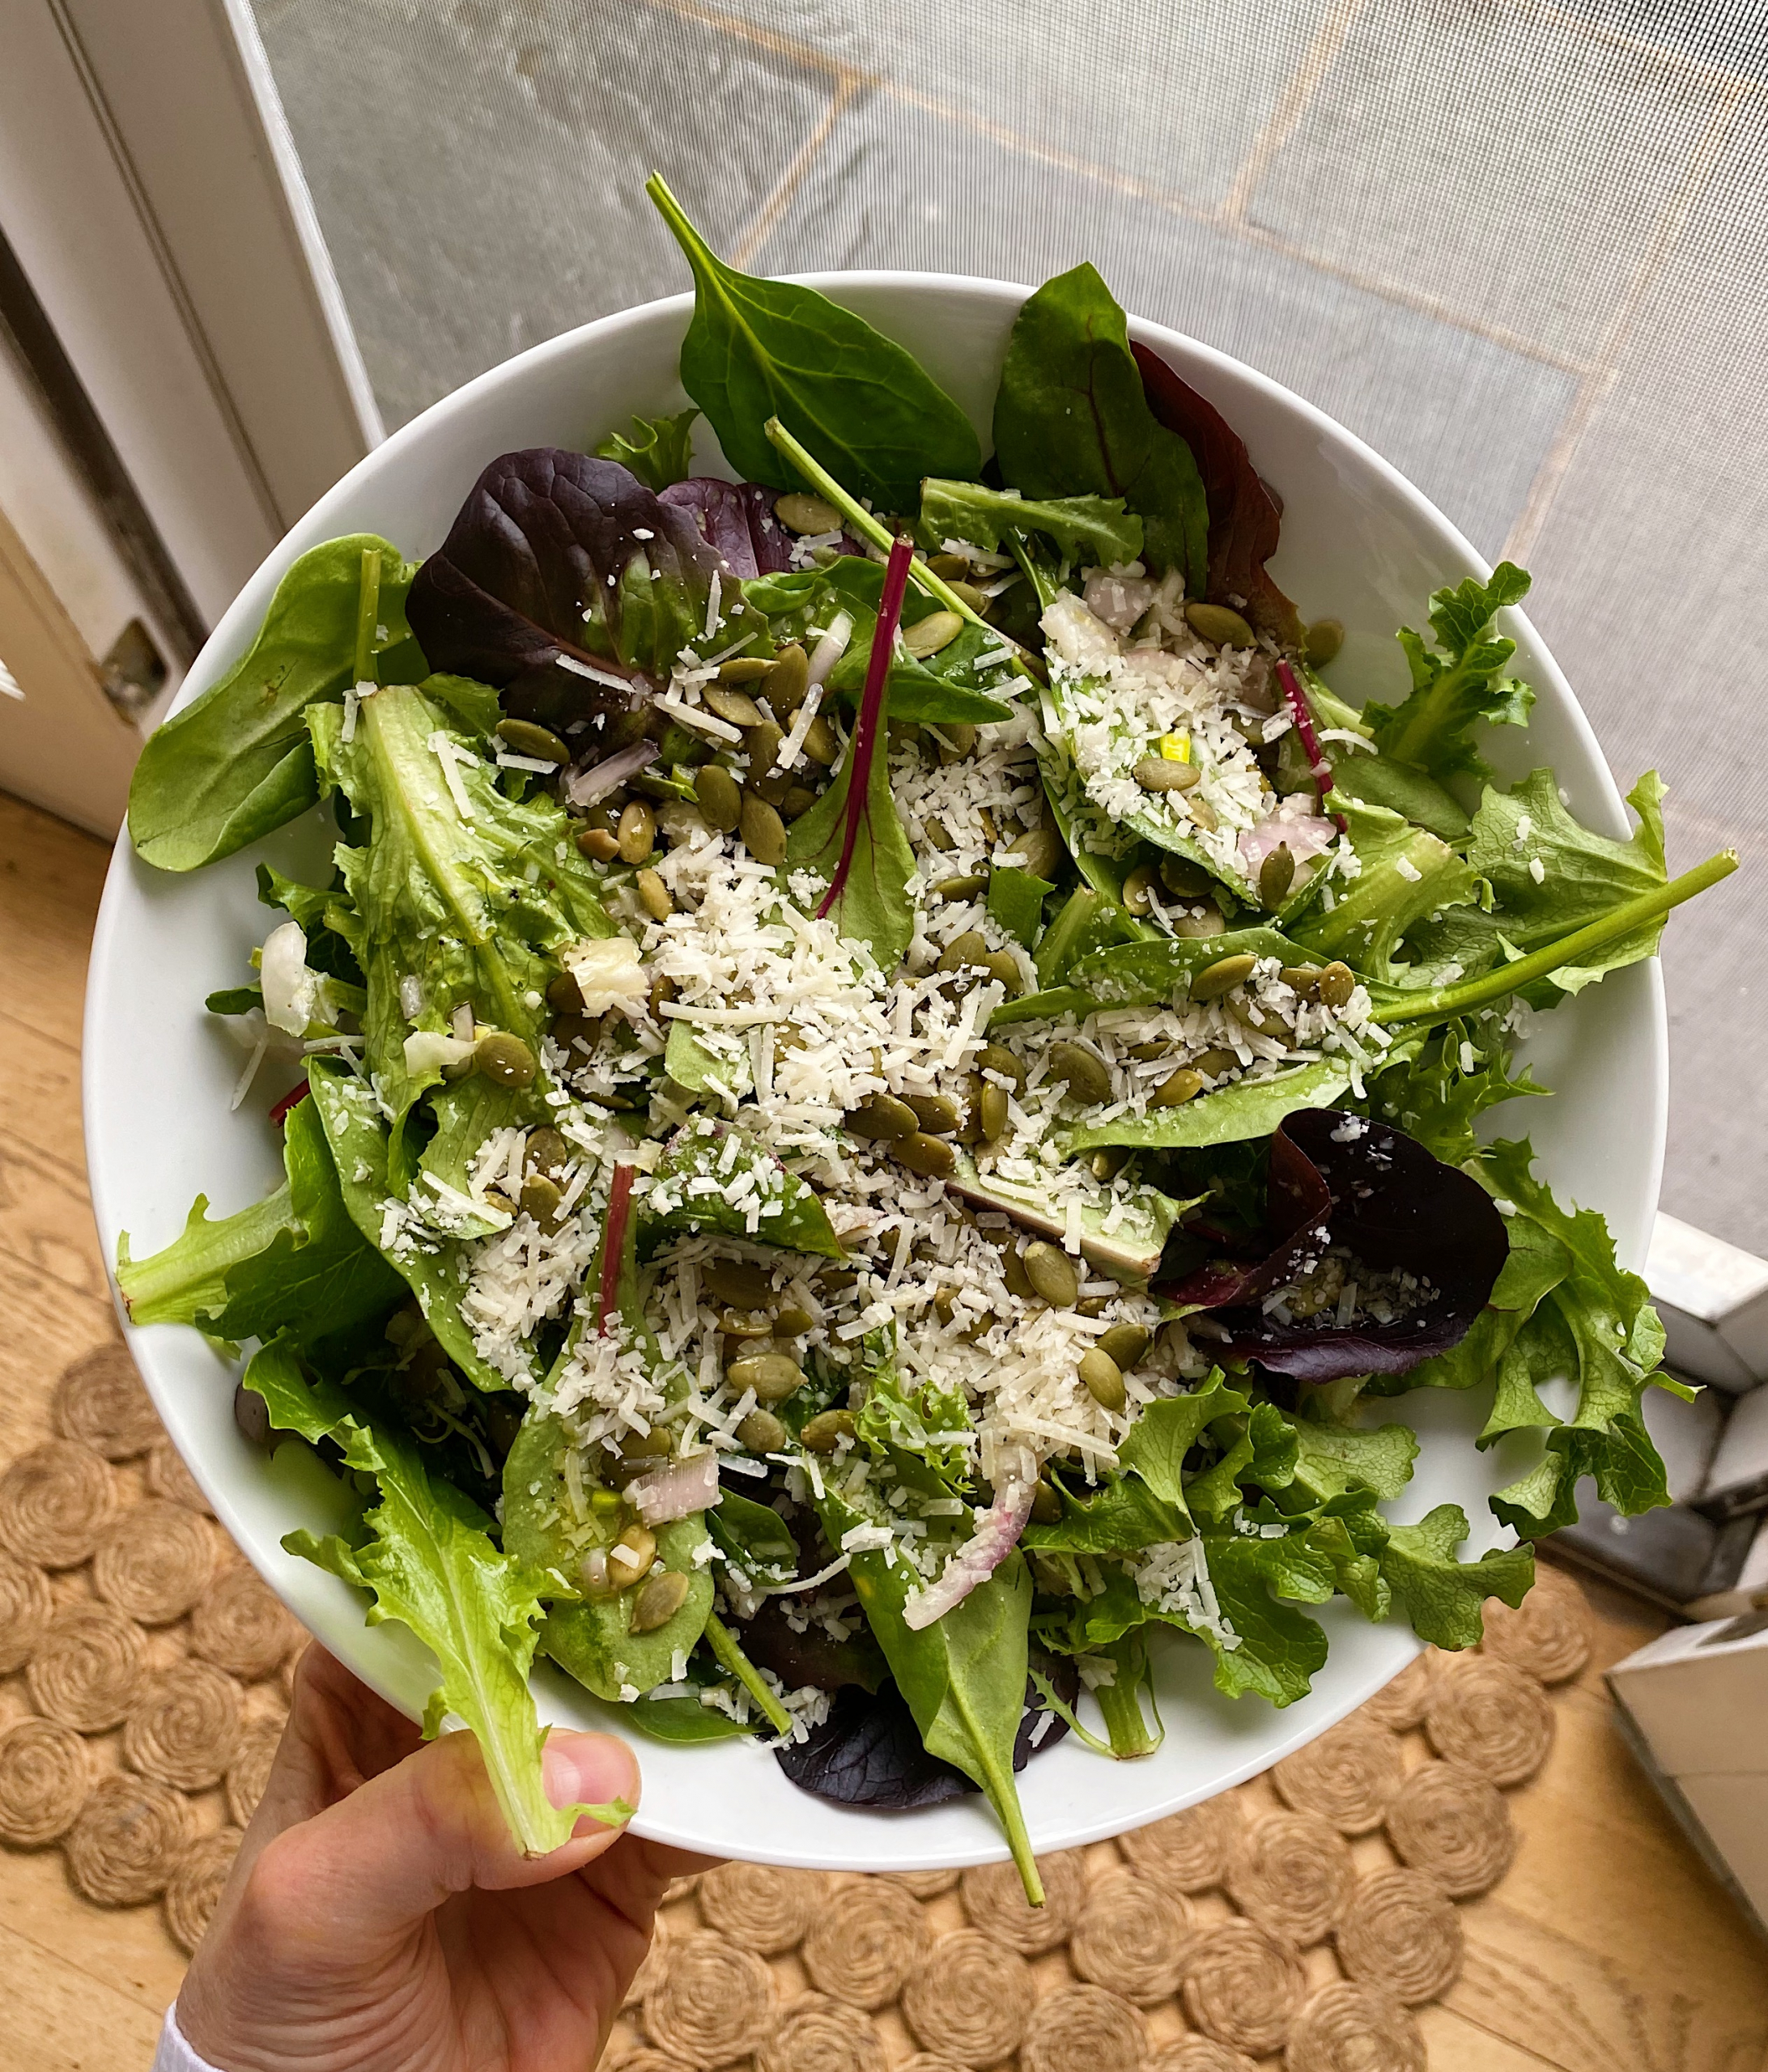 Simple Green Salad Lemon Honey Dressing gluten-free #glutenfreerecipes www.healthygffamily.com